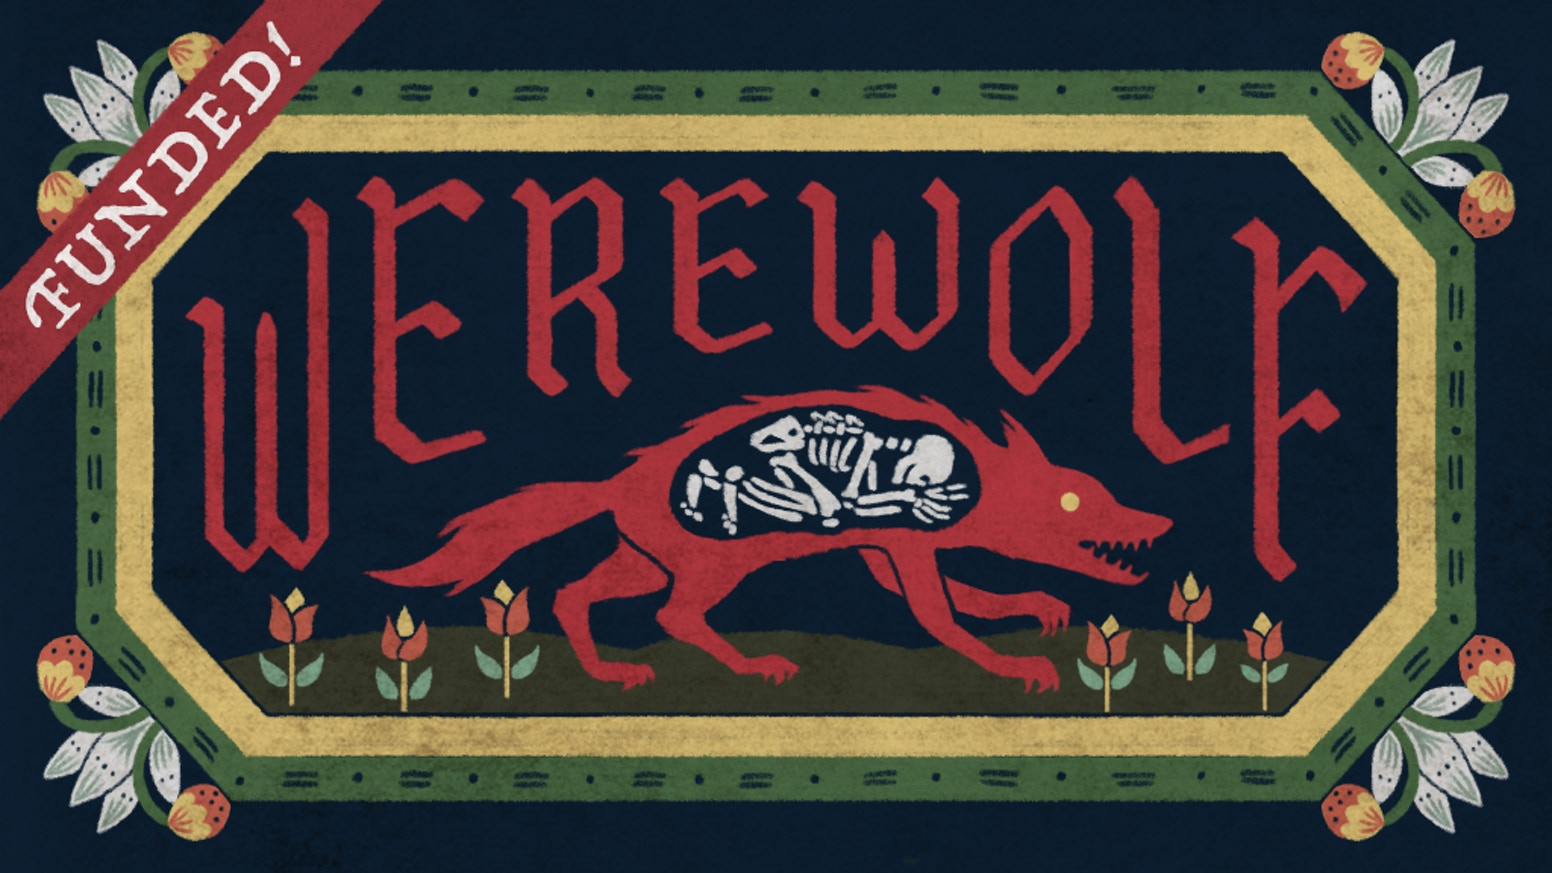 Inspired by the popular party game, Werewolf offers a host of colourful characters illustrated in a European folk art style.